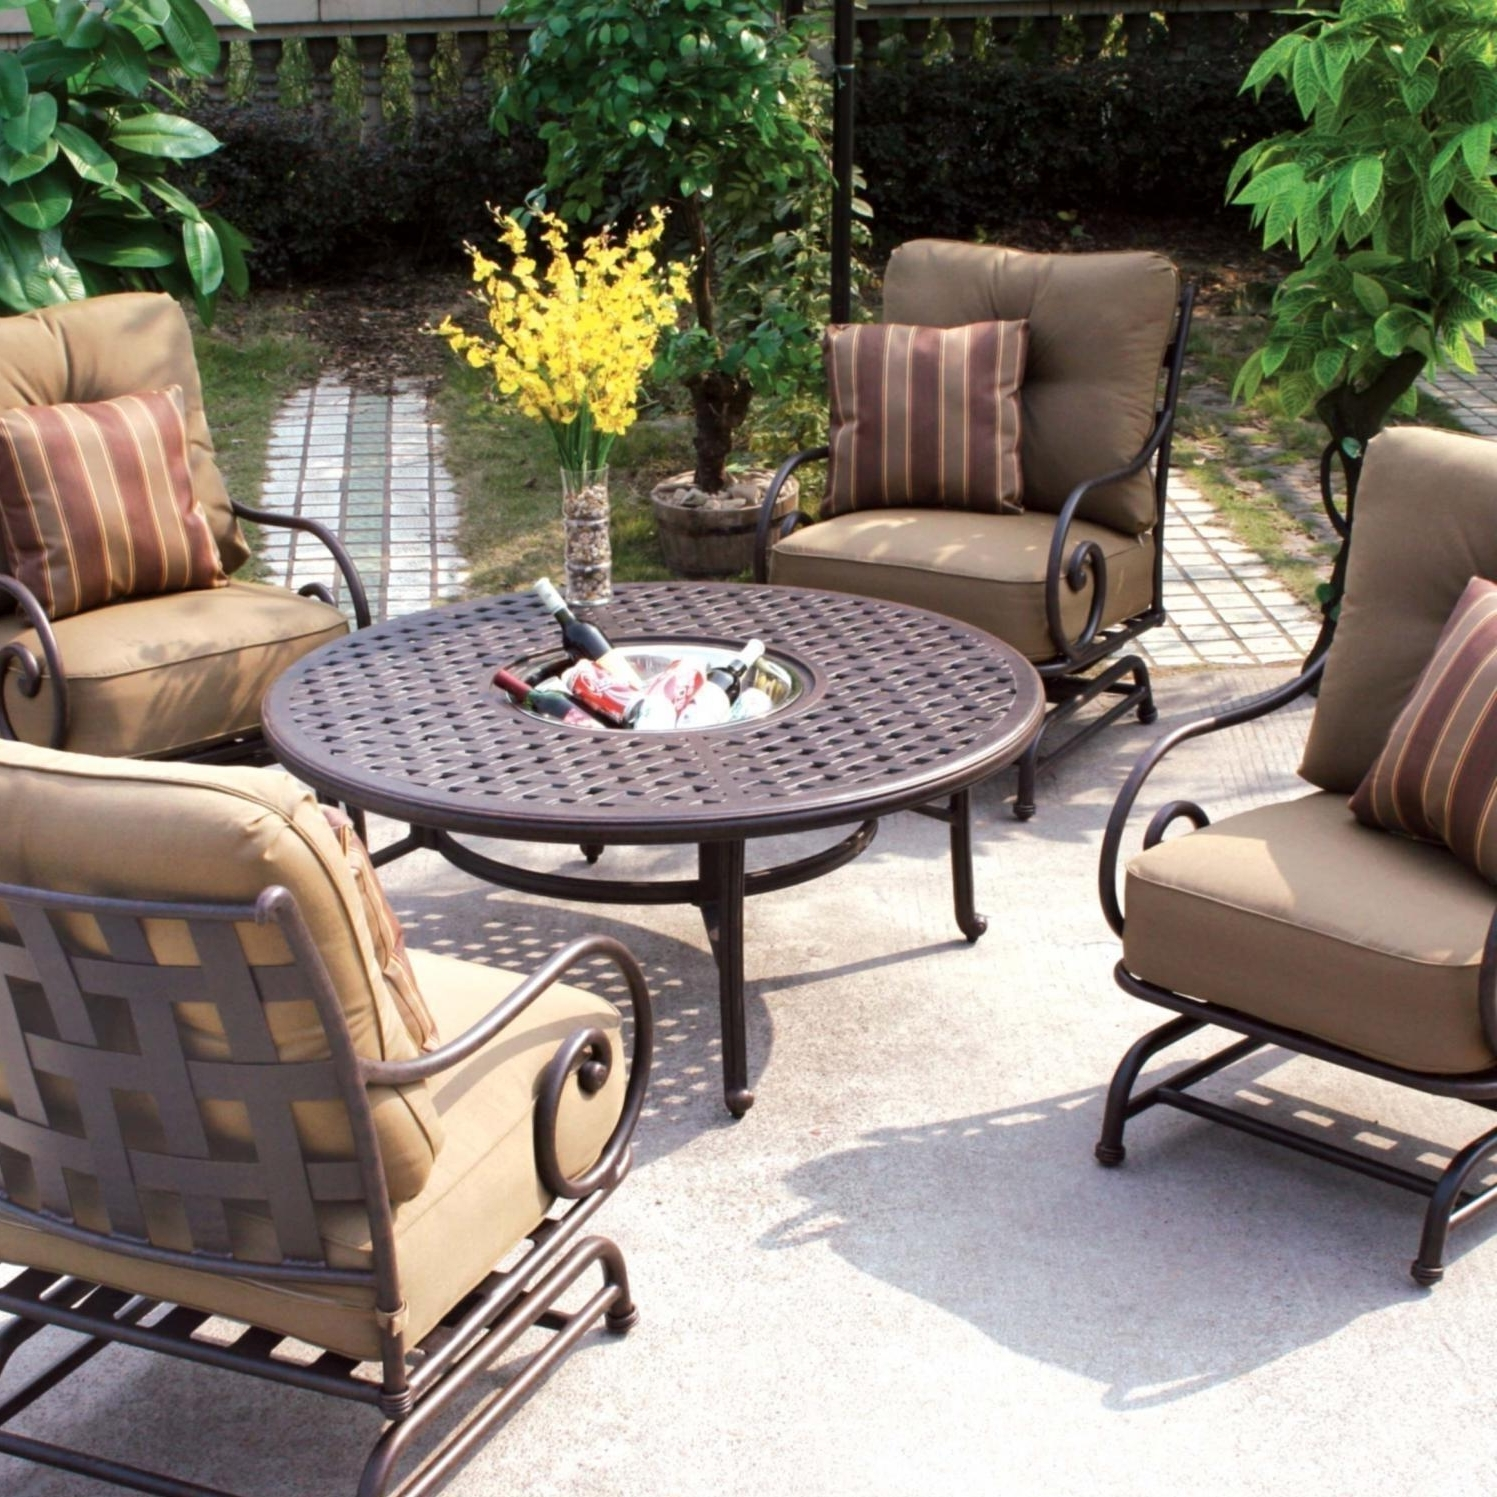 Patio Furniture Conversation Sets At Home Depot With Well Known Darlee Malibu 5 Piece Cast Aluminum Patio Conversation Seating Set (View 9 of 20)